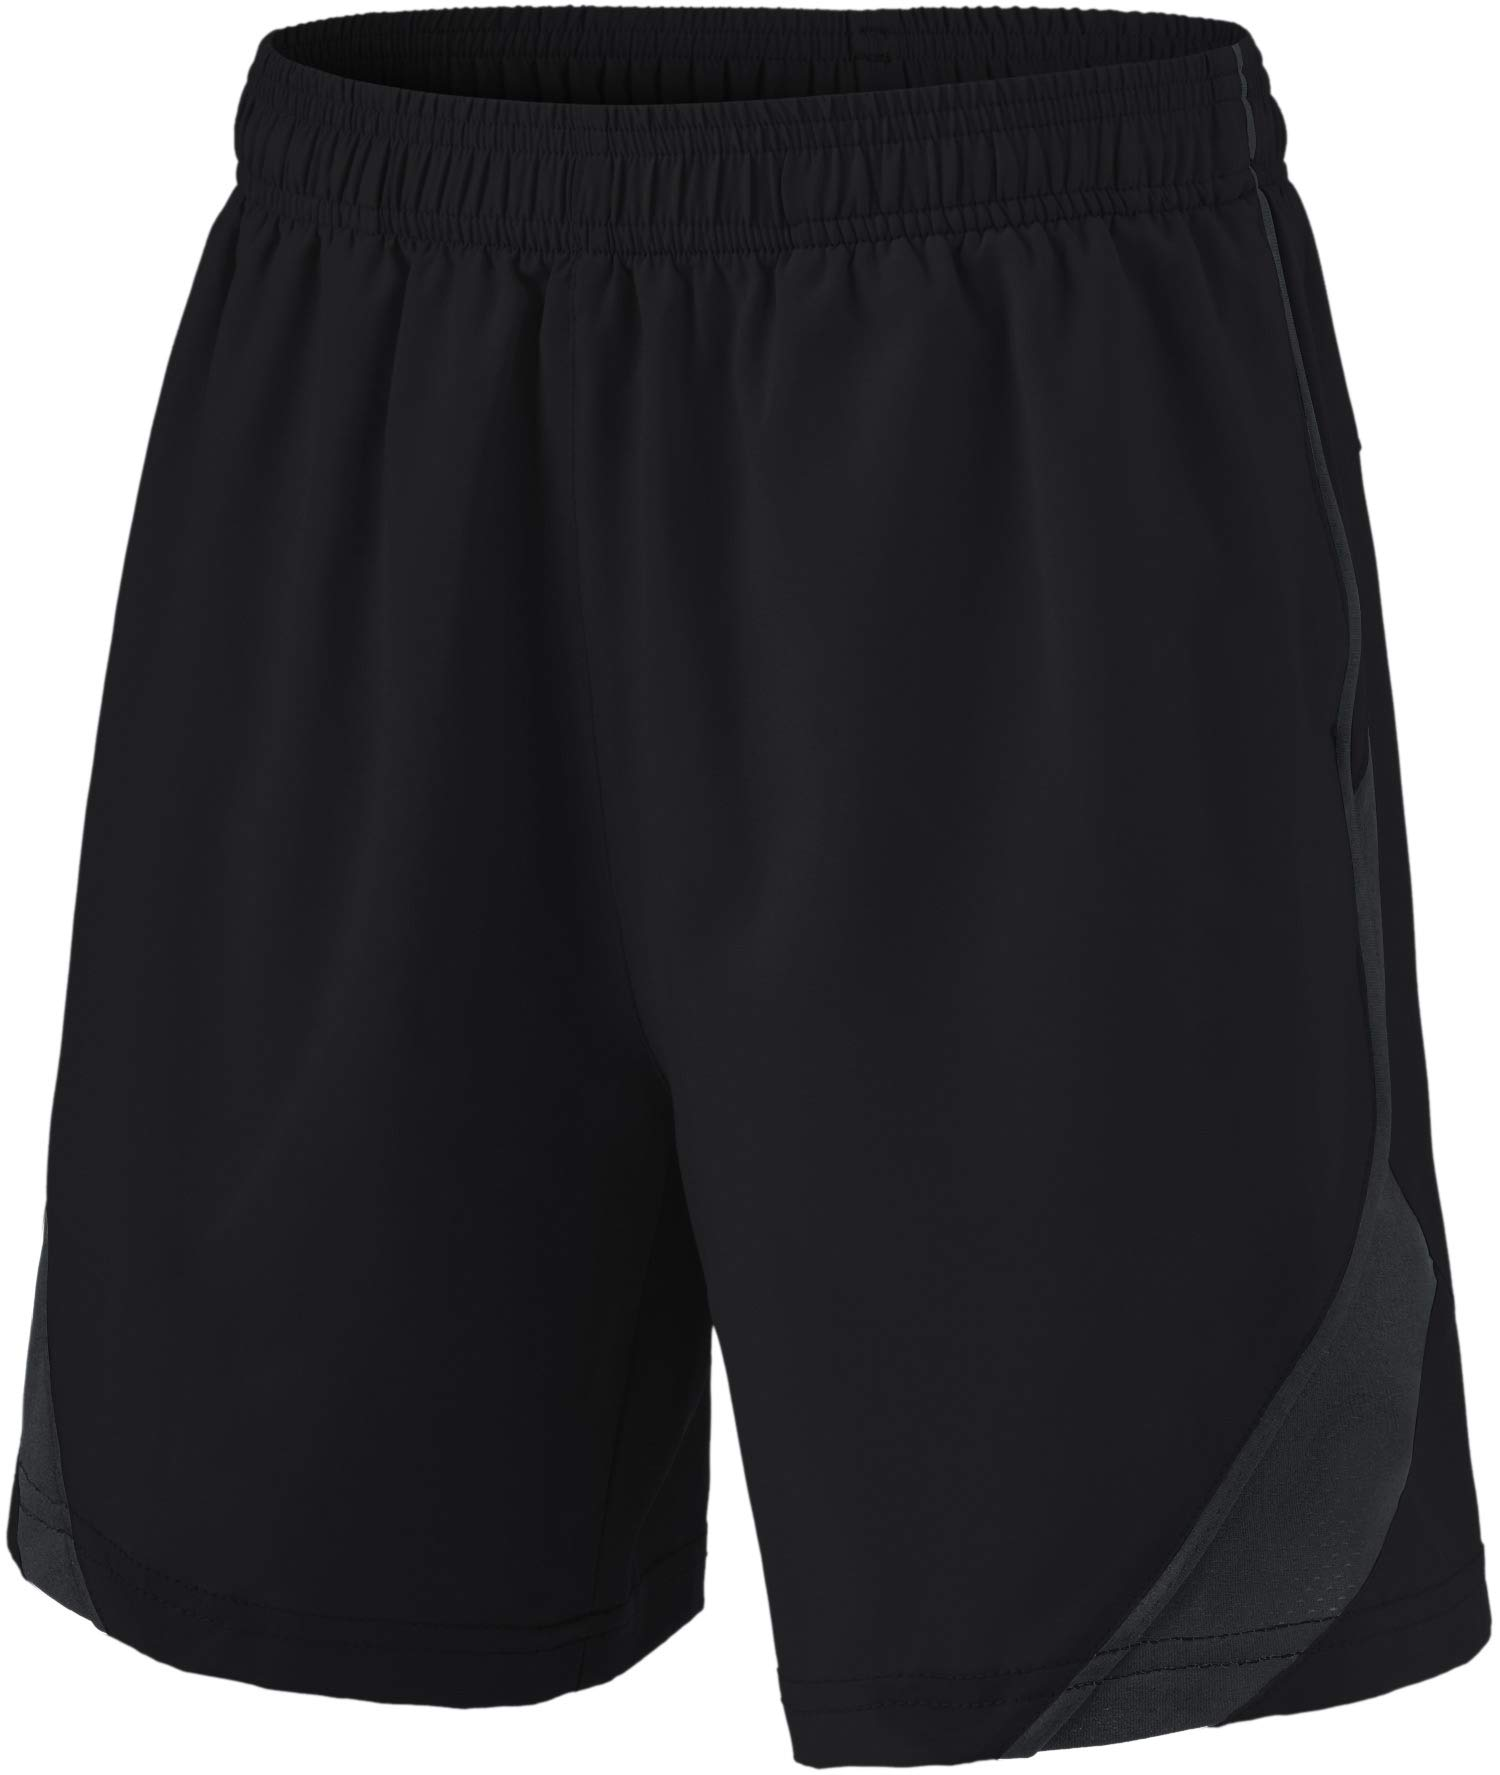 TSLA Boy's Active Shorts Sports Performance Youth HyperDri II w Pockets, Stretch Pace(kbh76) - Black, Youth Large by TSLA